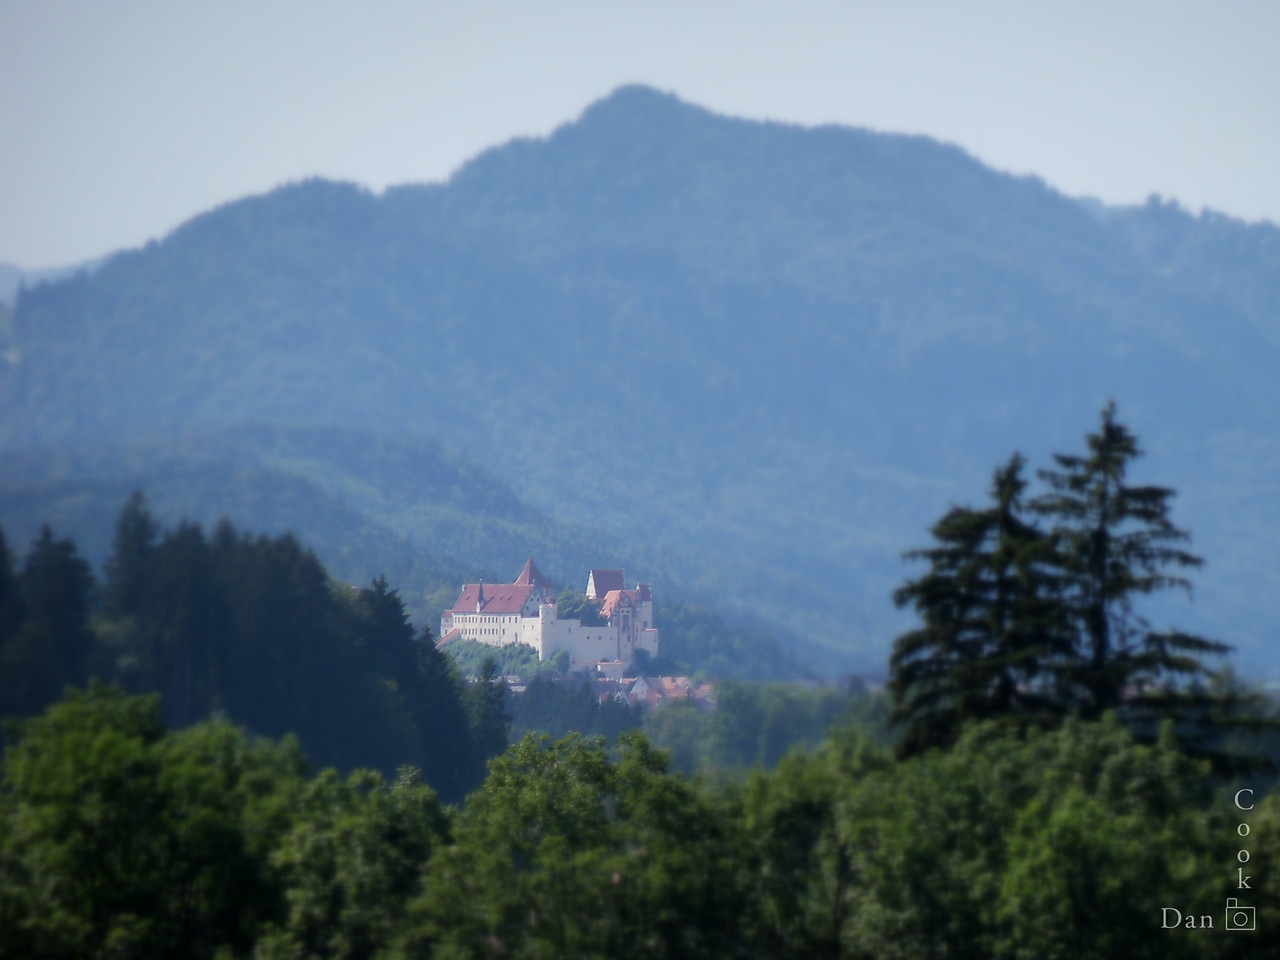 Schloss Hohenschwangau in Bavarian region of Germany